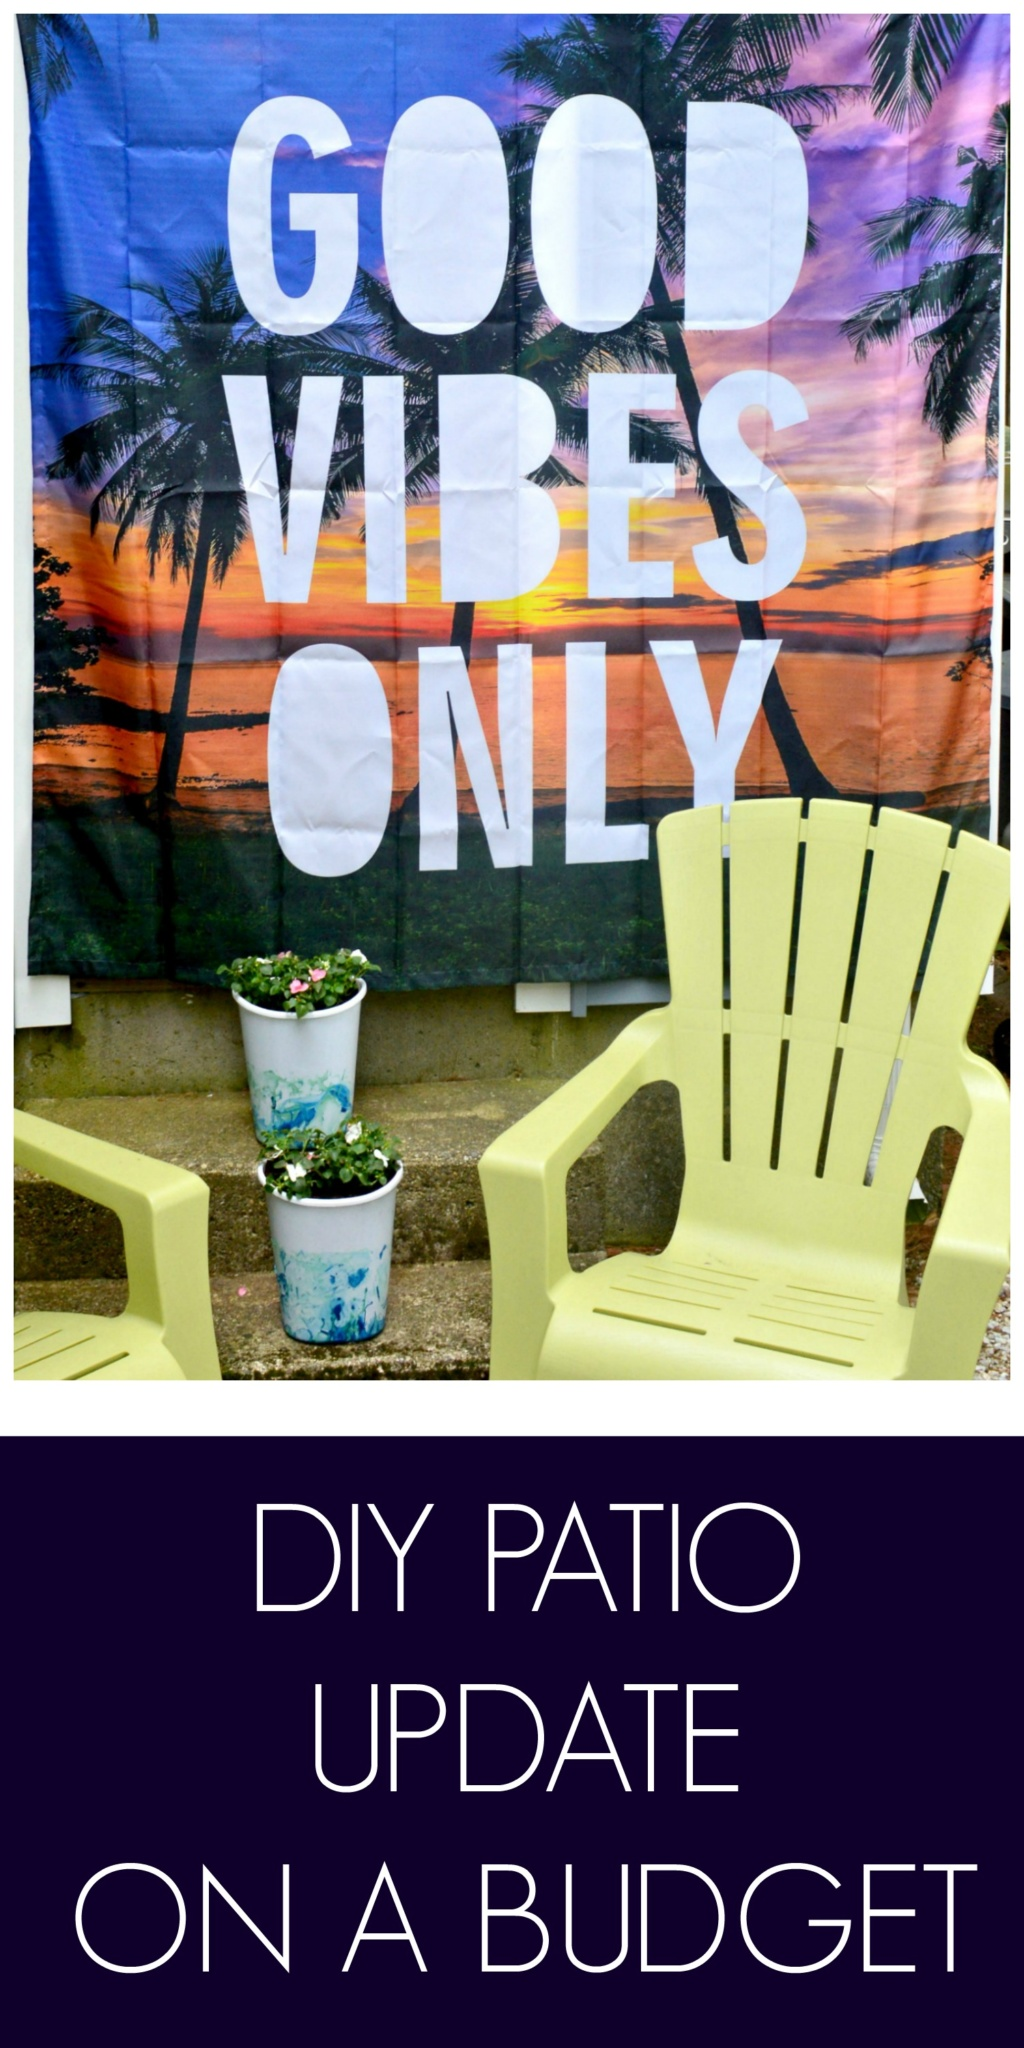 DIY Patio Update On a Budget